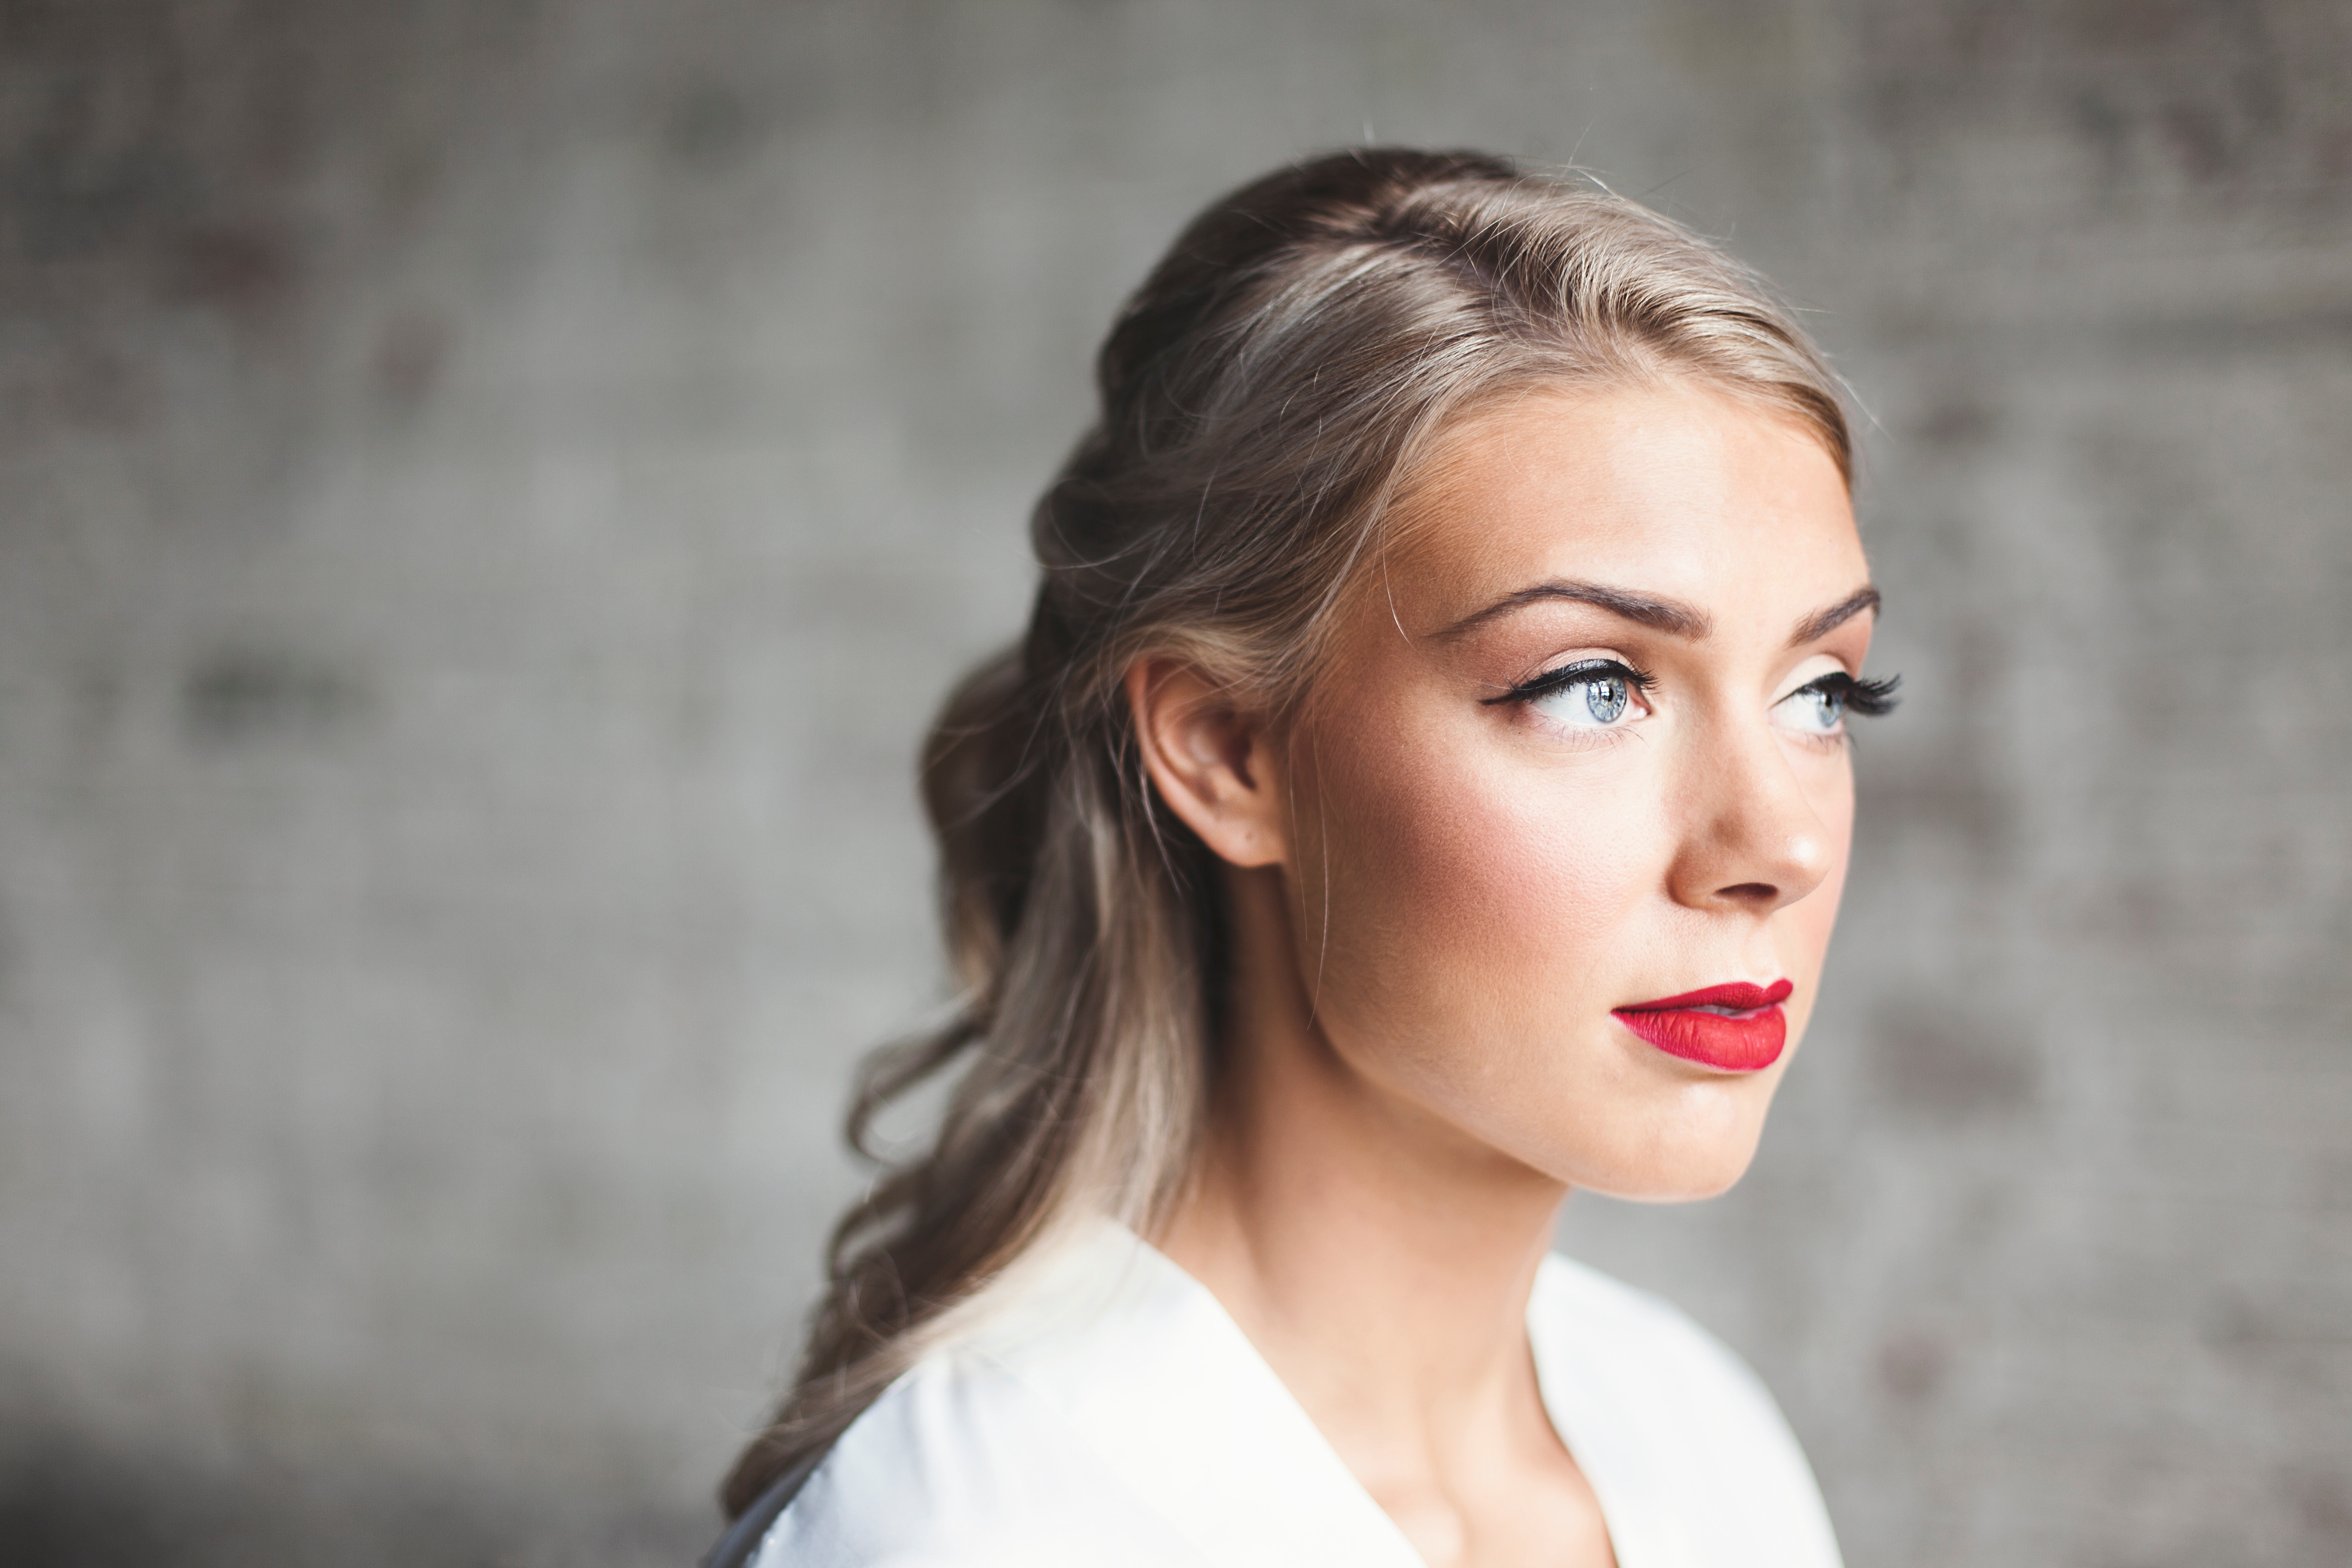 blue-eyed, blonde woman with smooth facial skin and red lipstick